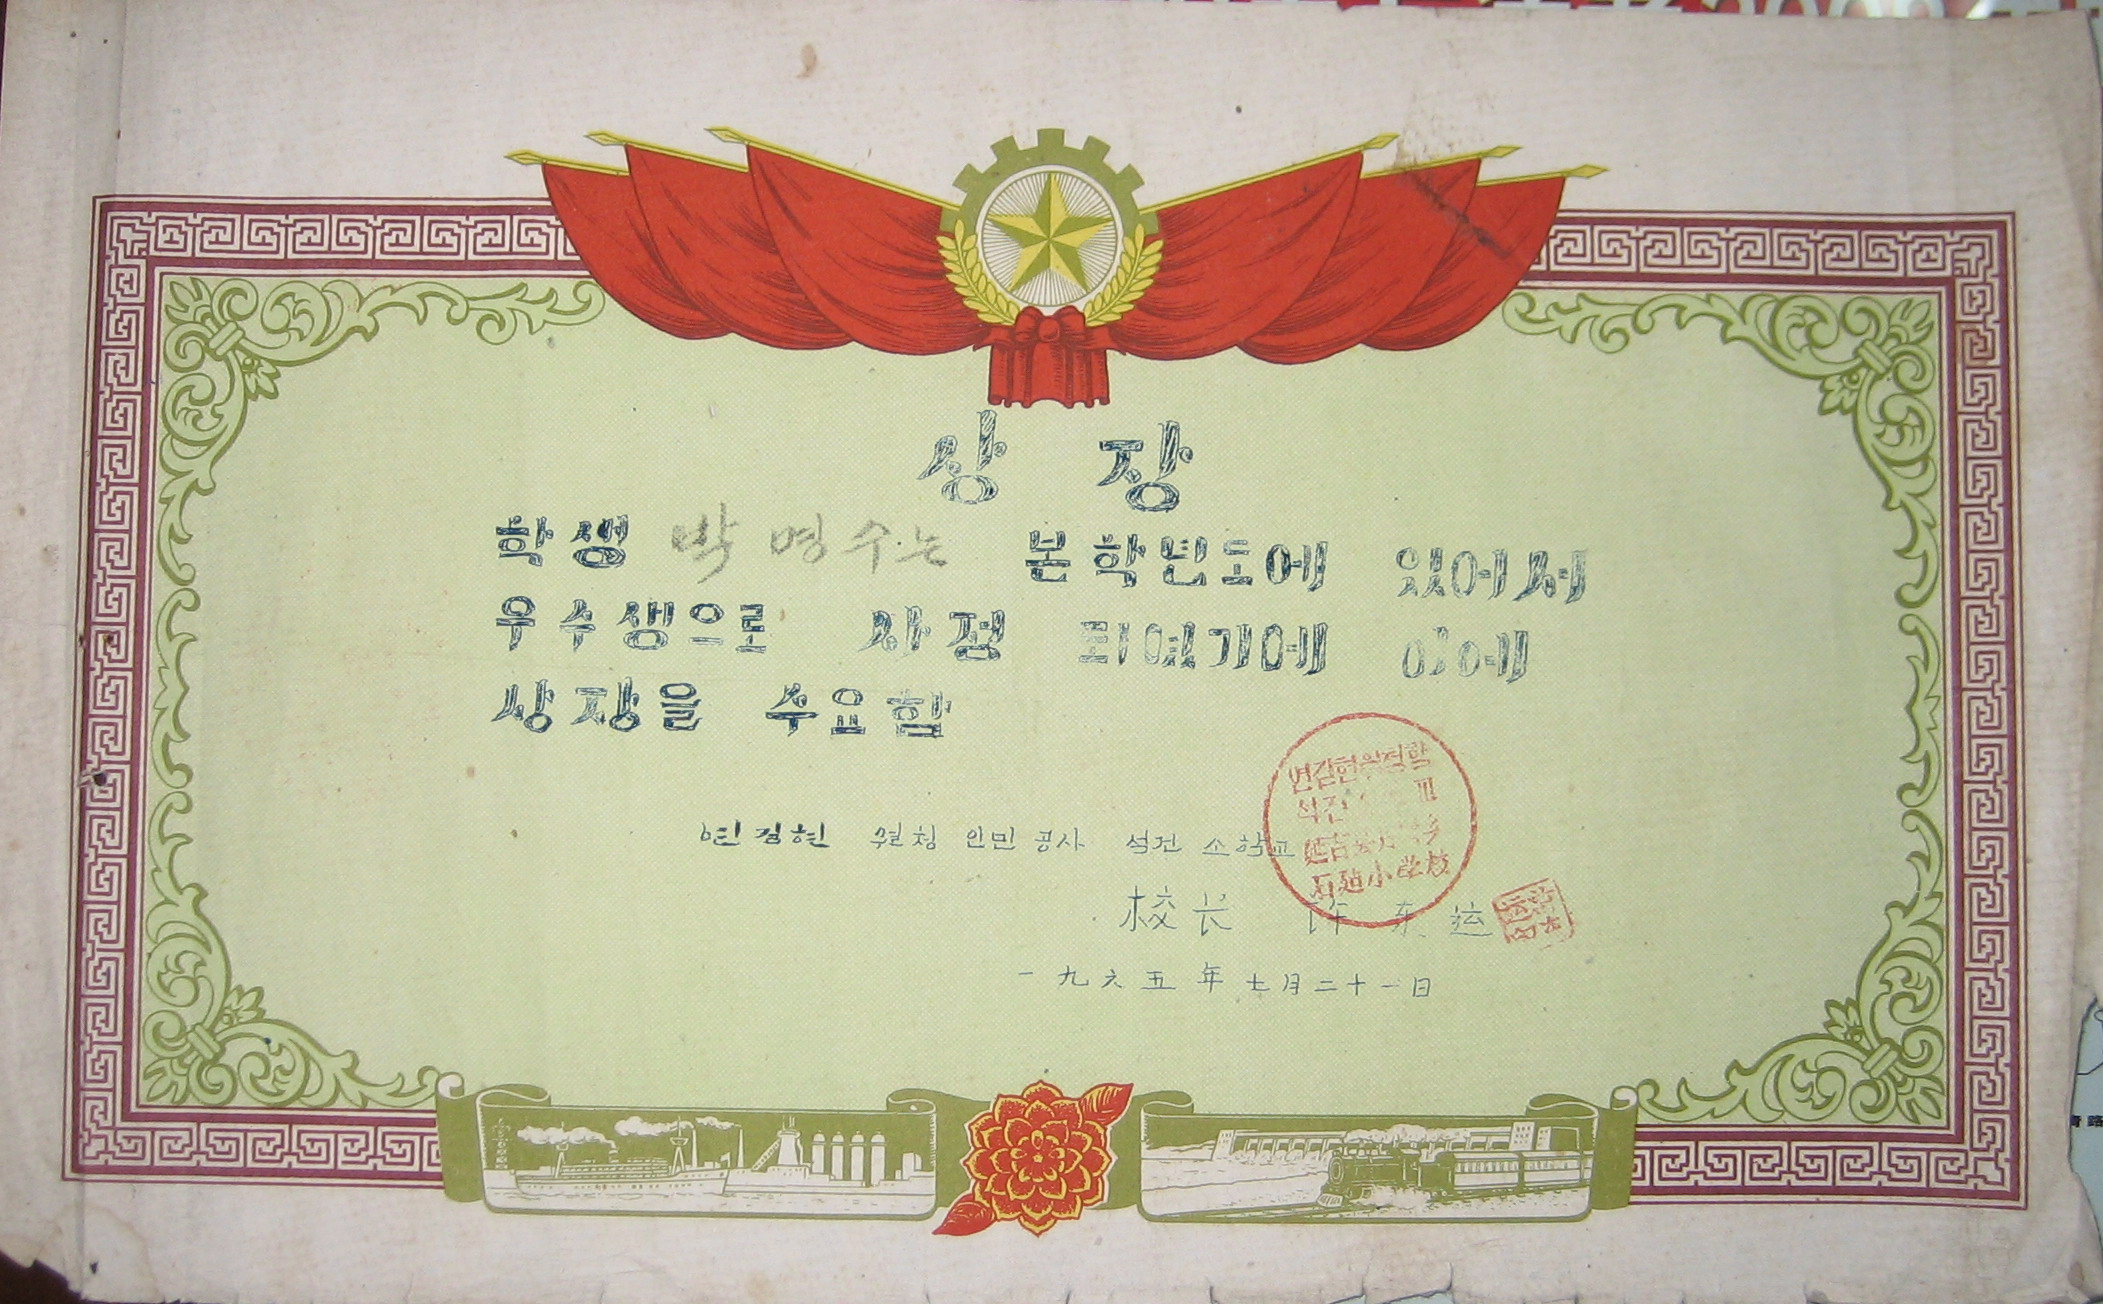 D5201, School Awards, Korean & Chinese Language, China 1965